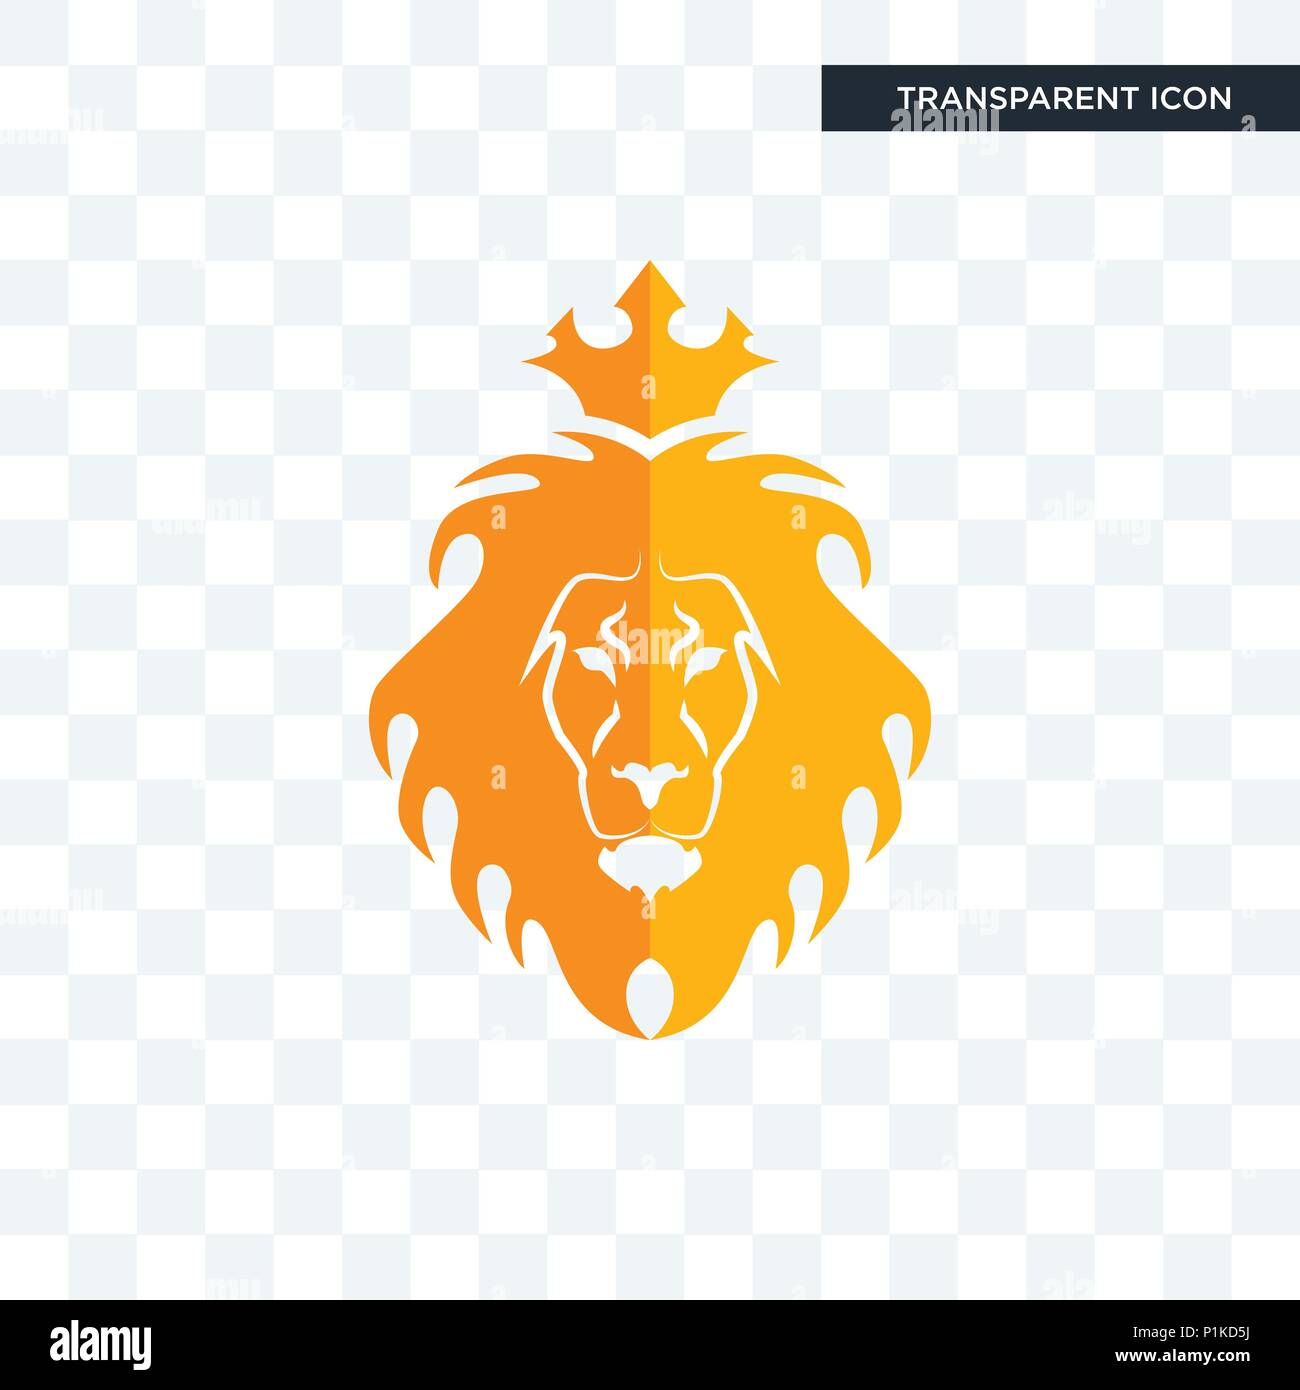 Judah and the lion vector icon isolated on transparent background judah and the lion logo concept